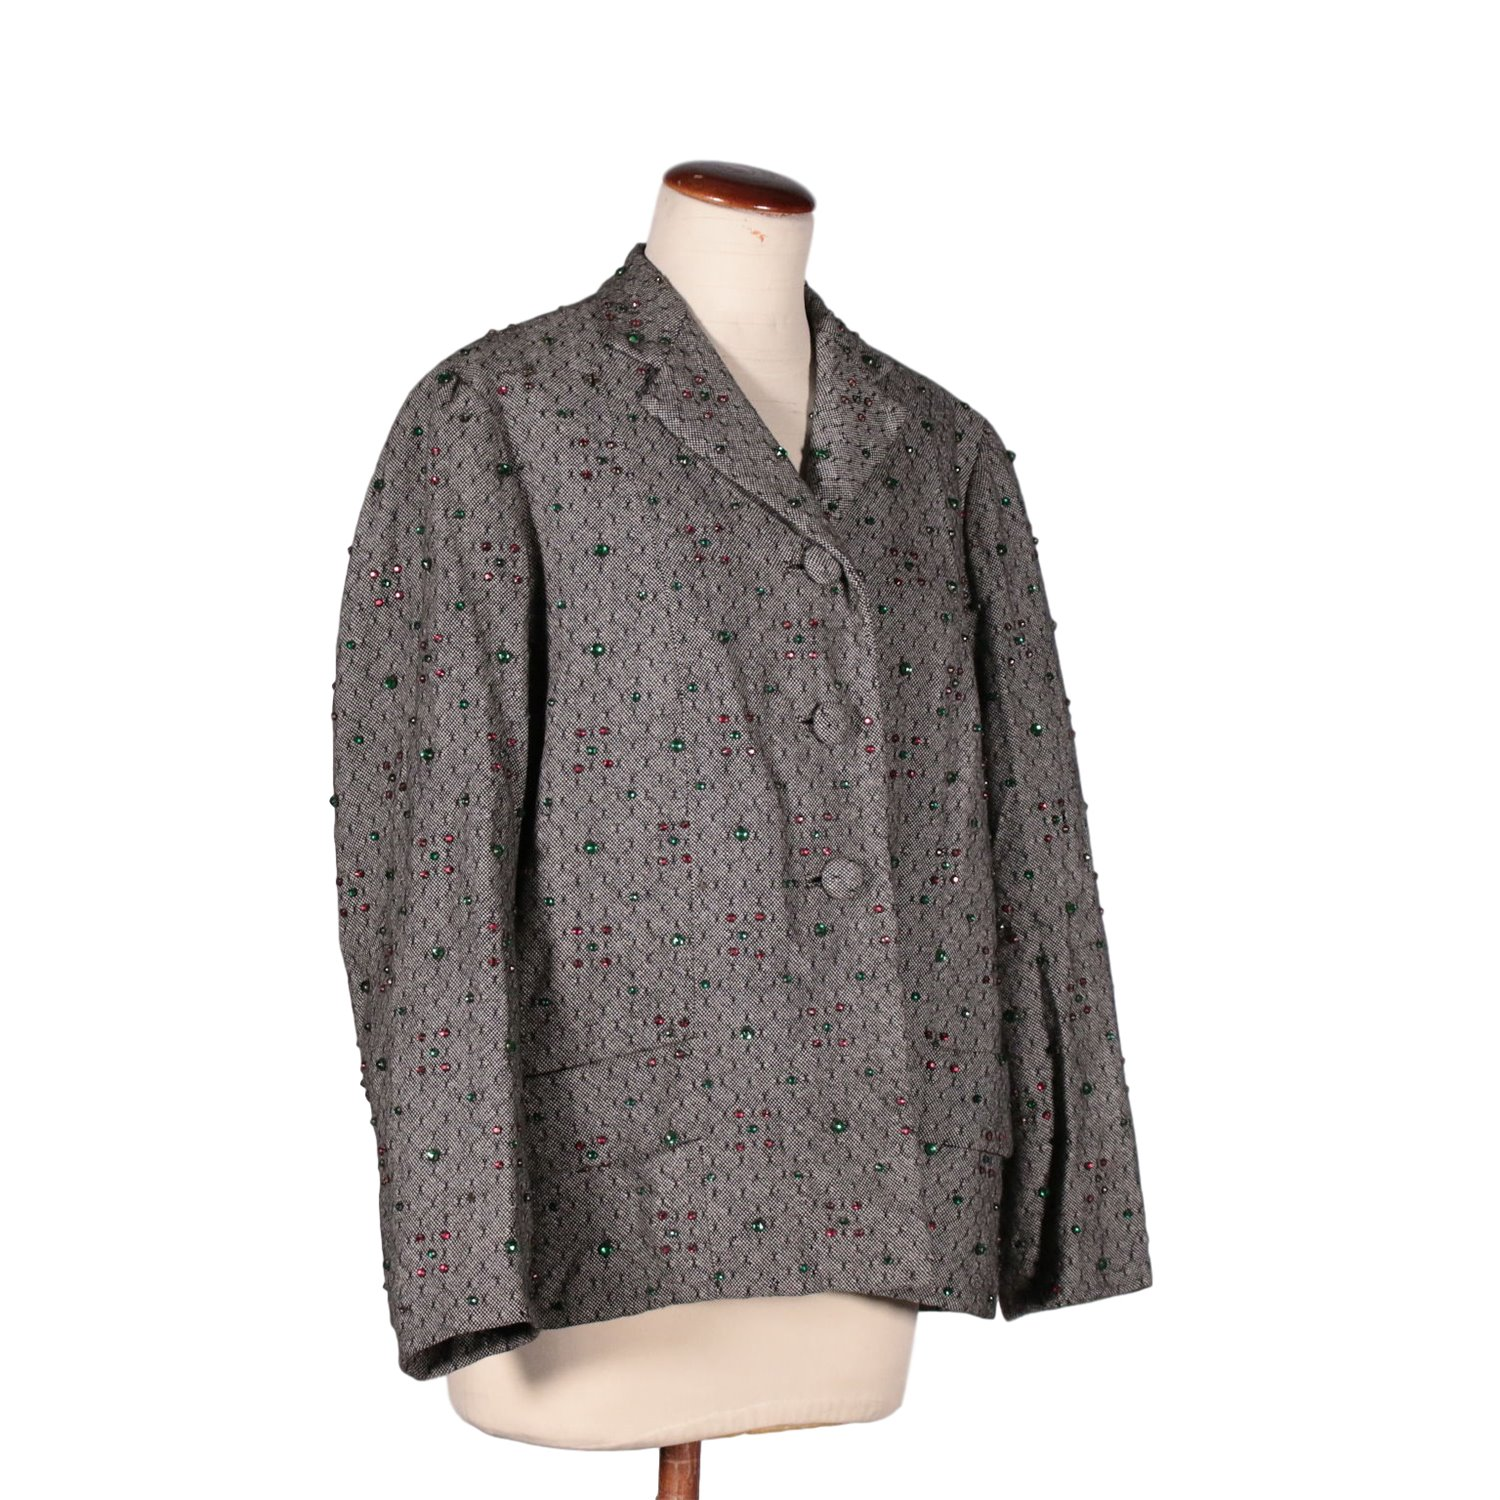 Vintage Wool Jacket With Beads 1950's-1960's